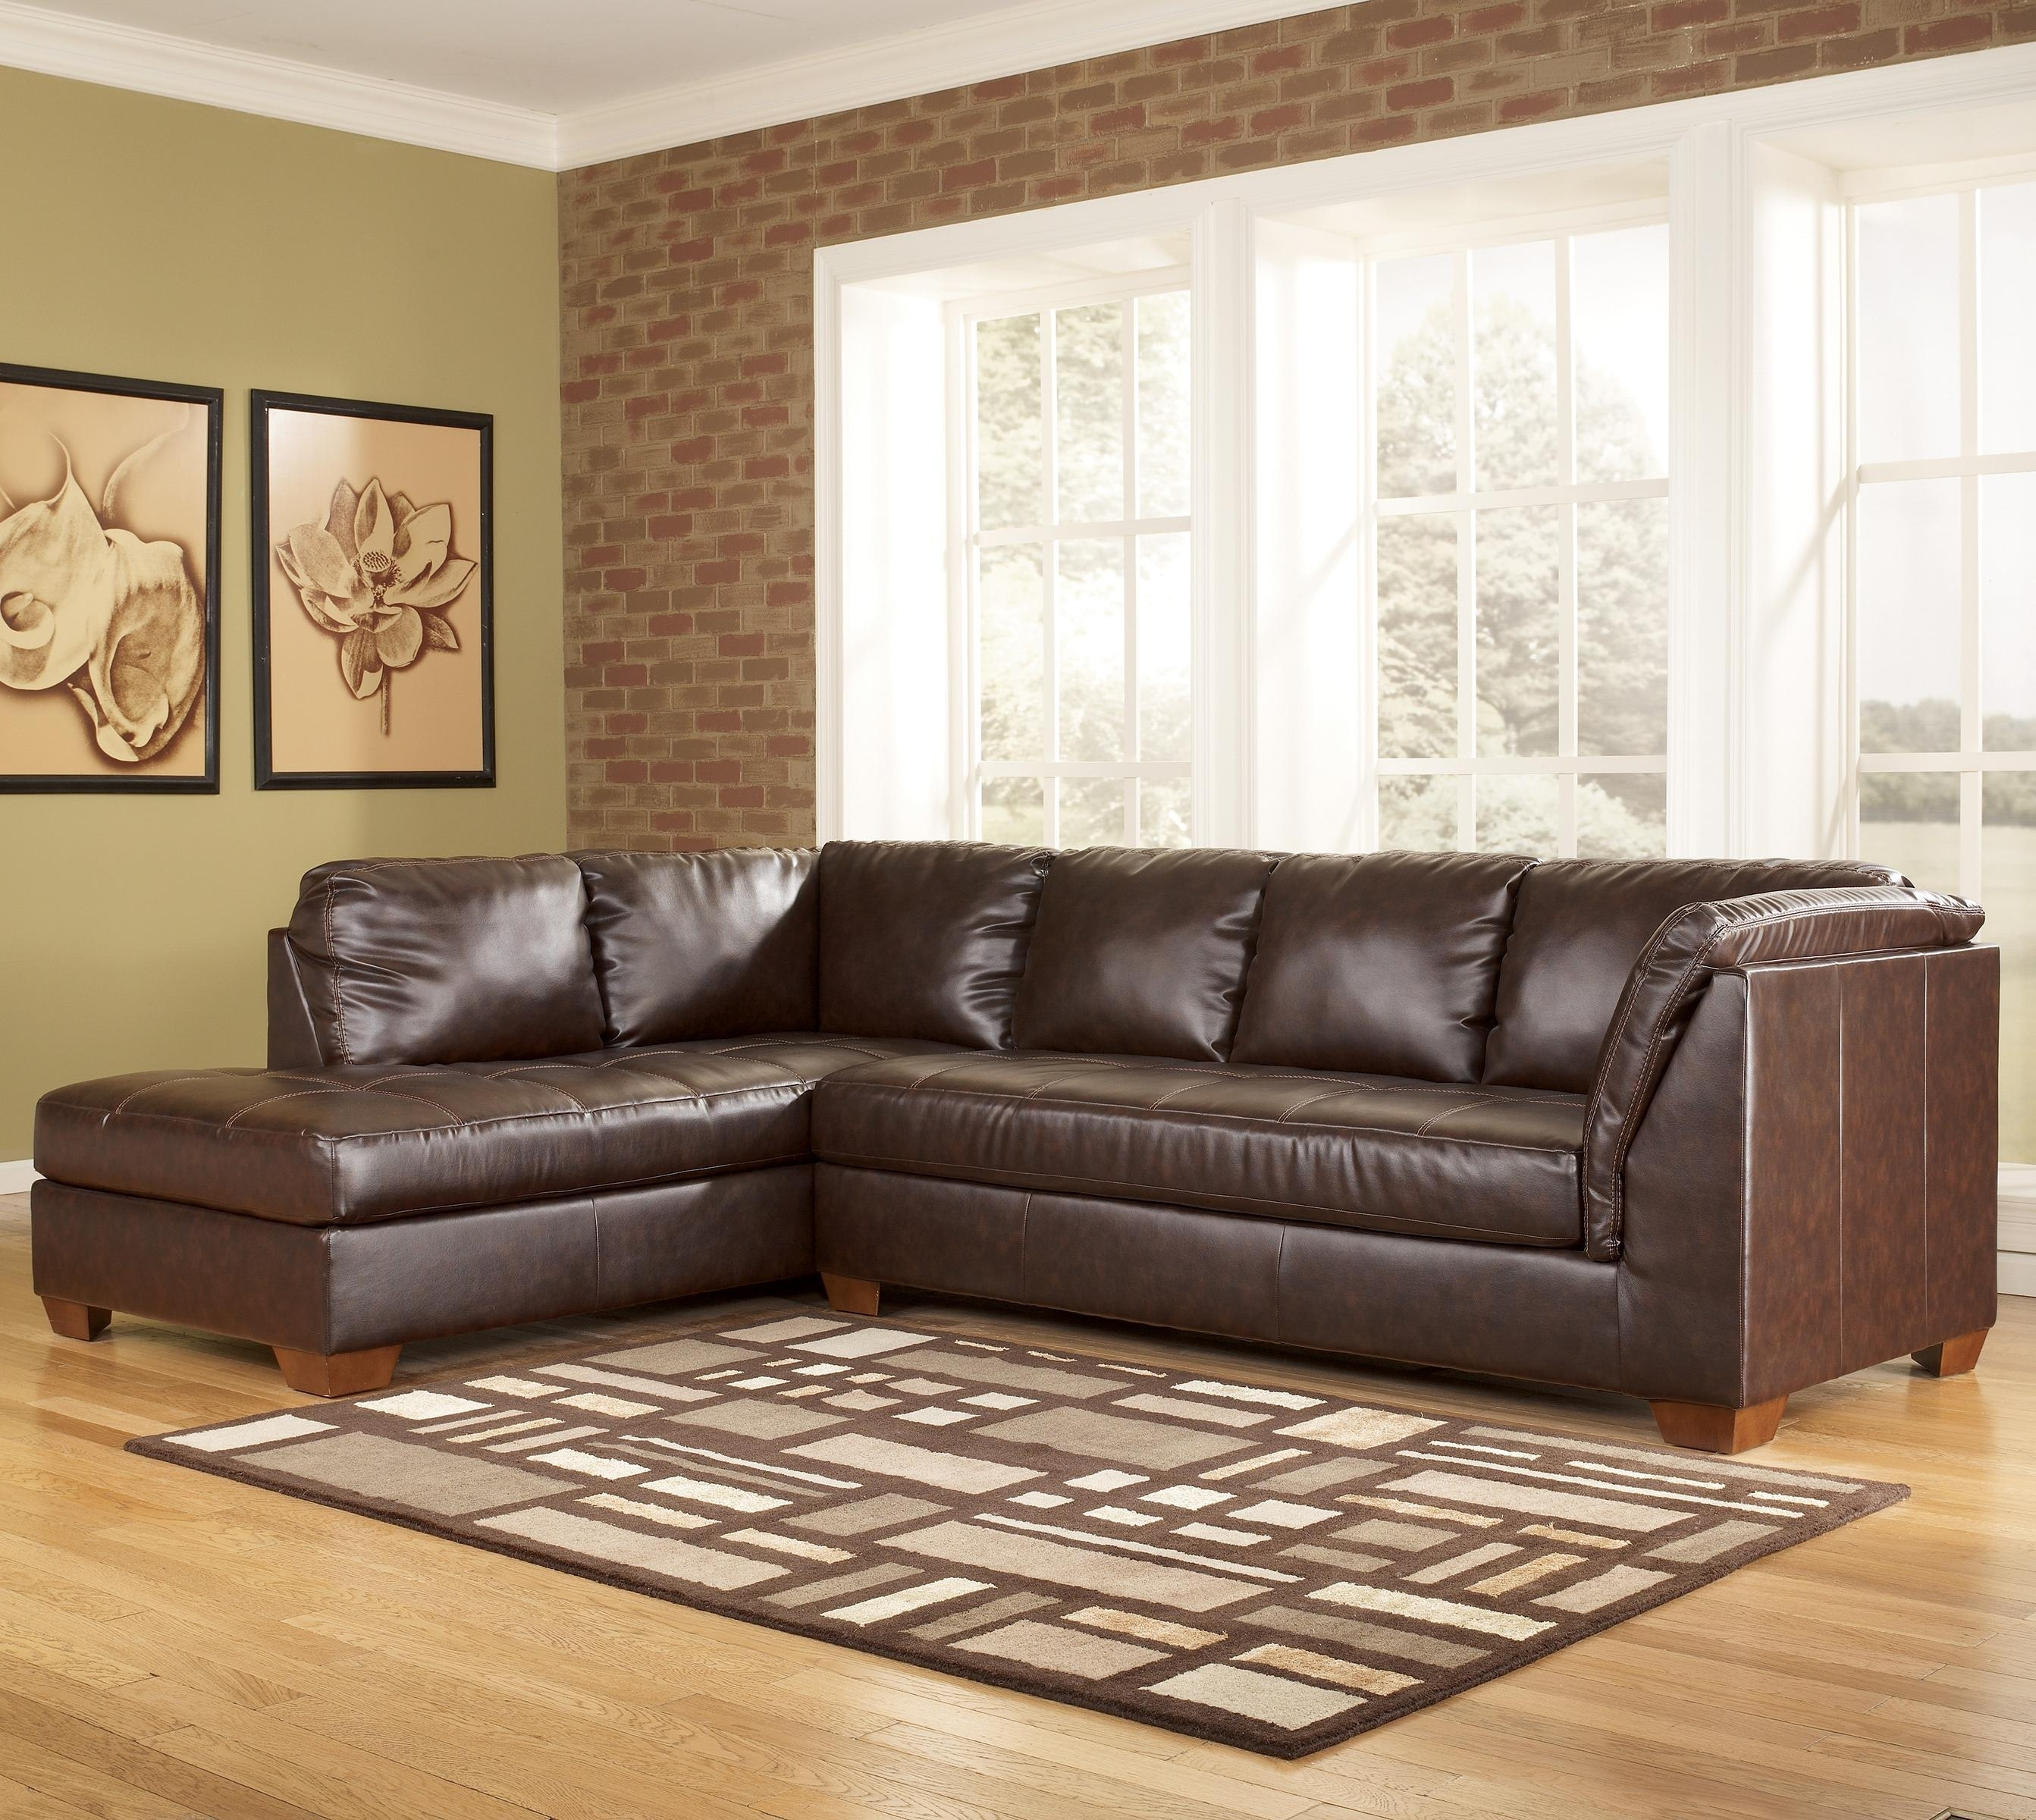 Signature Designashley Fairplay Durablend® Contemporary intended for Clarksville Tn Sectional Sofas (Image 6 of 10)